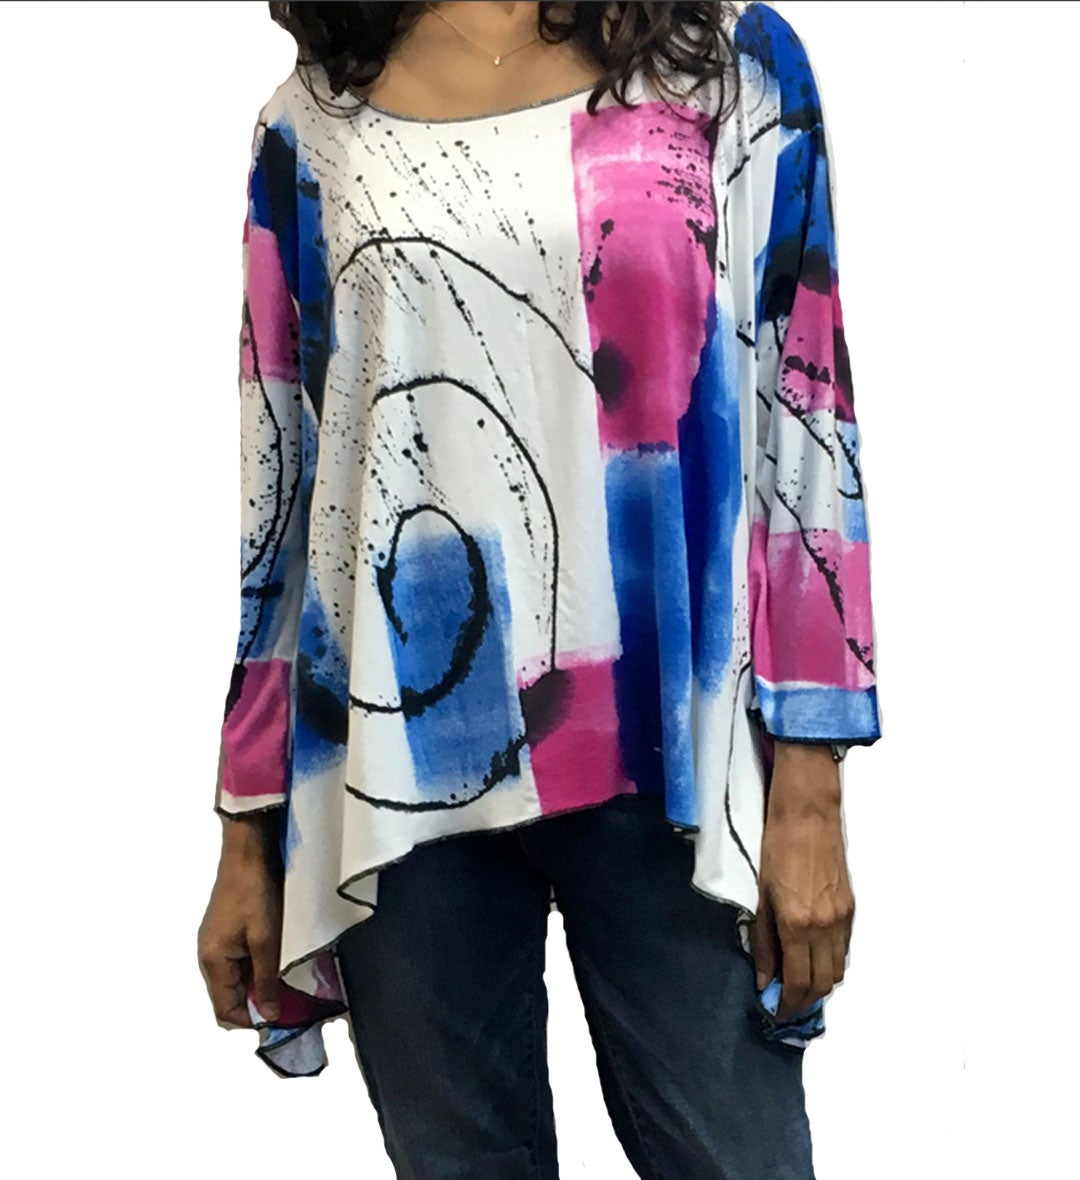 Image of Lisa Top - Rayon/Spandex - Hand Painted